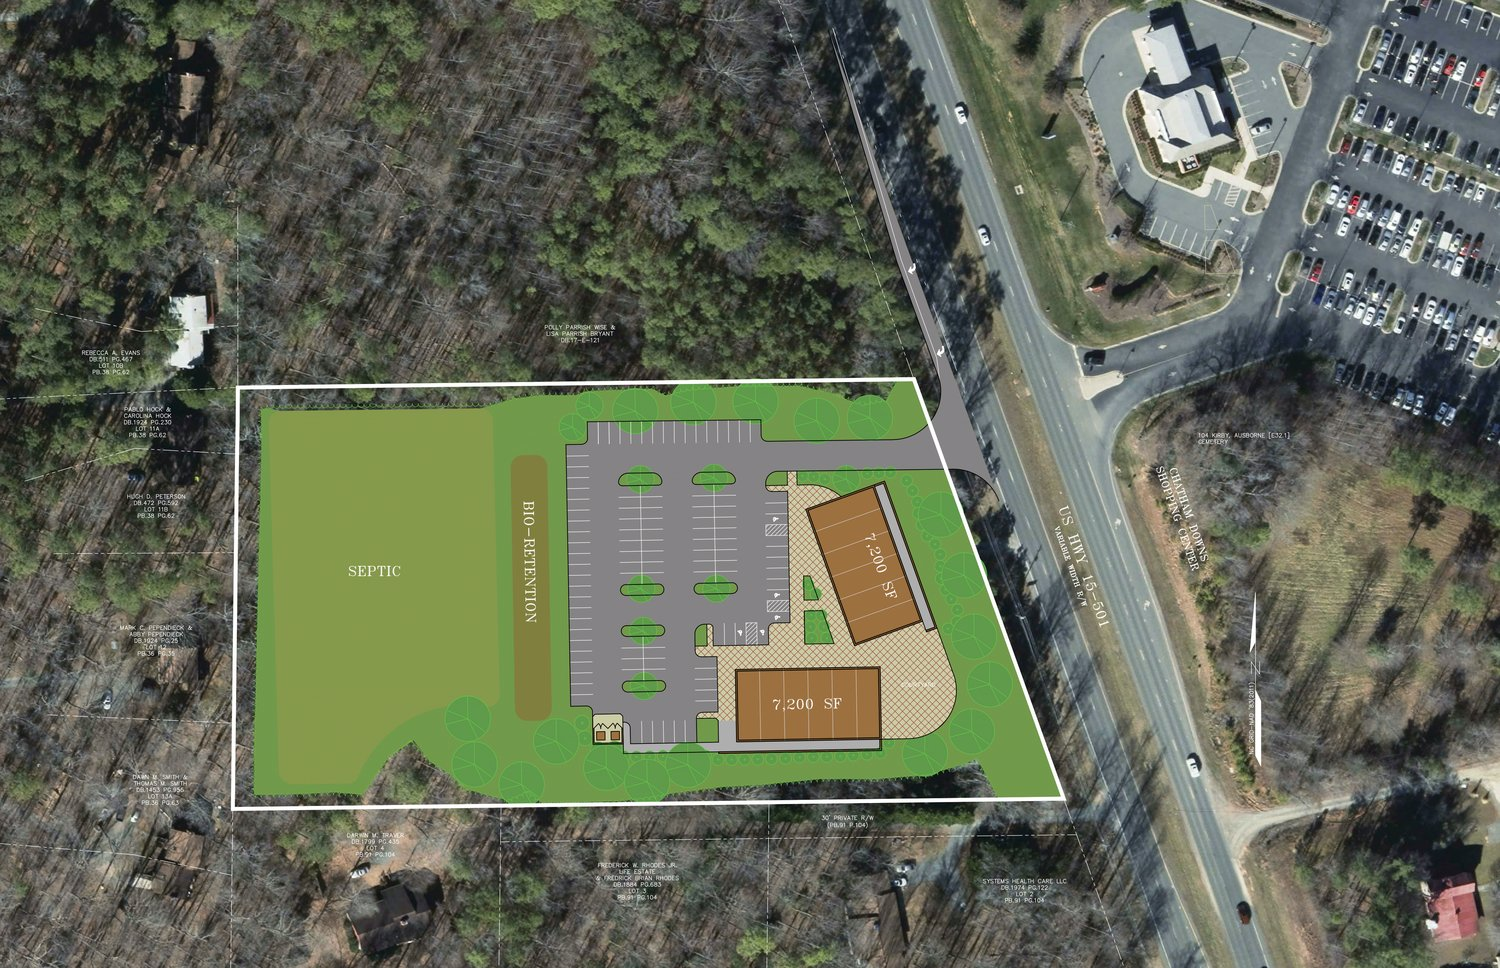 A birds-eye view rendering of the proposed 501 Landing, a shopping center currently awaiting rezoning of a parcel of land off of U.S. Highway 15-501 in the Chapel Hill part of Chatham County.